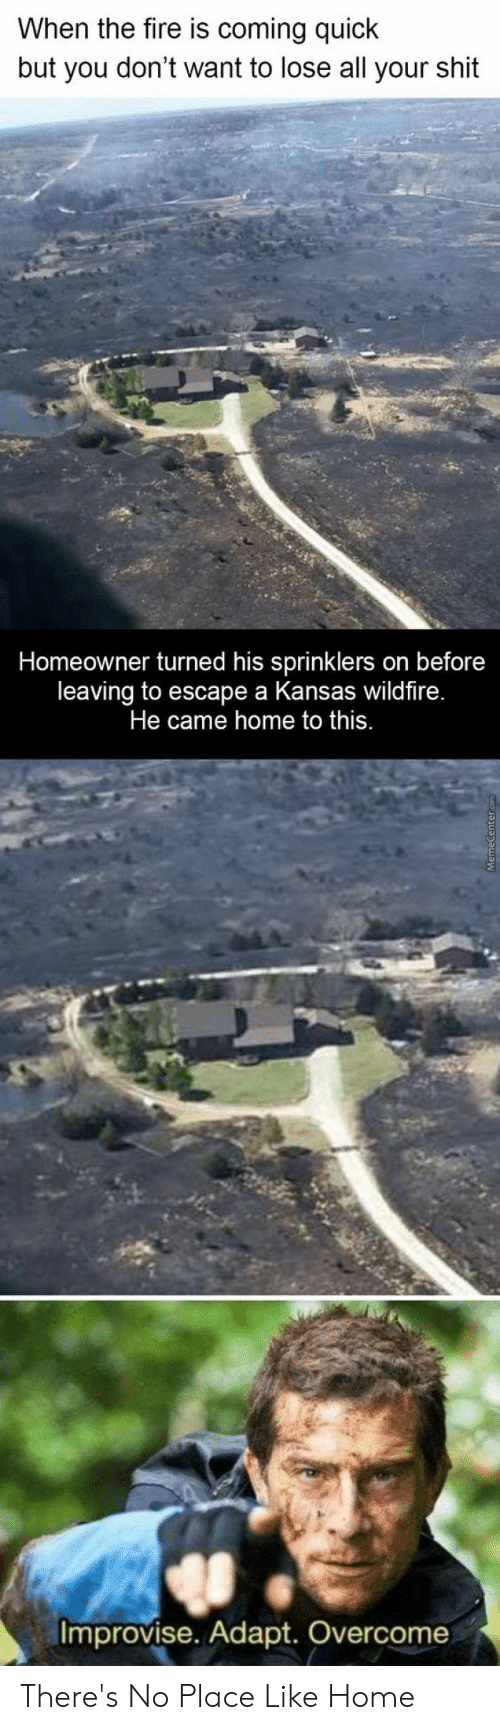 sprinklers: When the fire is coming quick  but you don't want to lose all your shit  Homeowner turned his sprinklers on before  leaving to escape a Kansas wildfire.  Improvise. Adapt. Overcome There's No Place Like Home